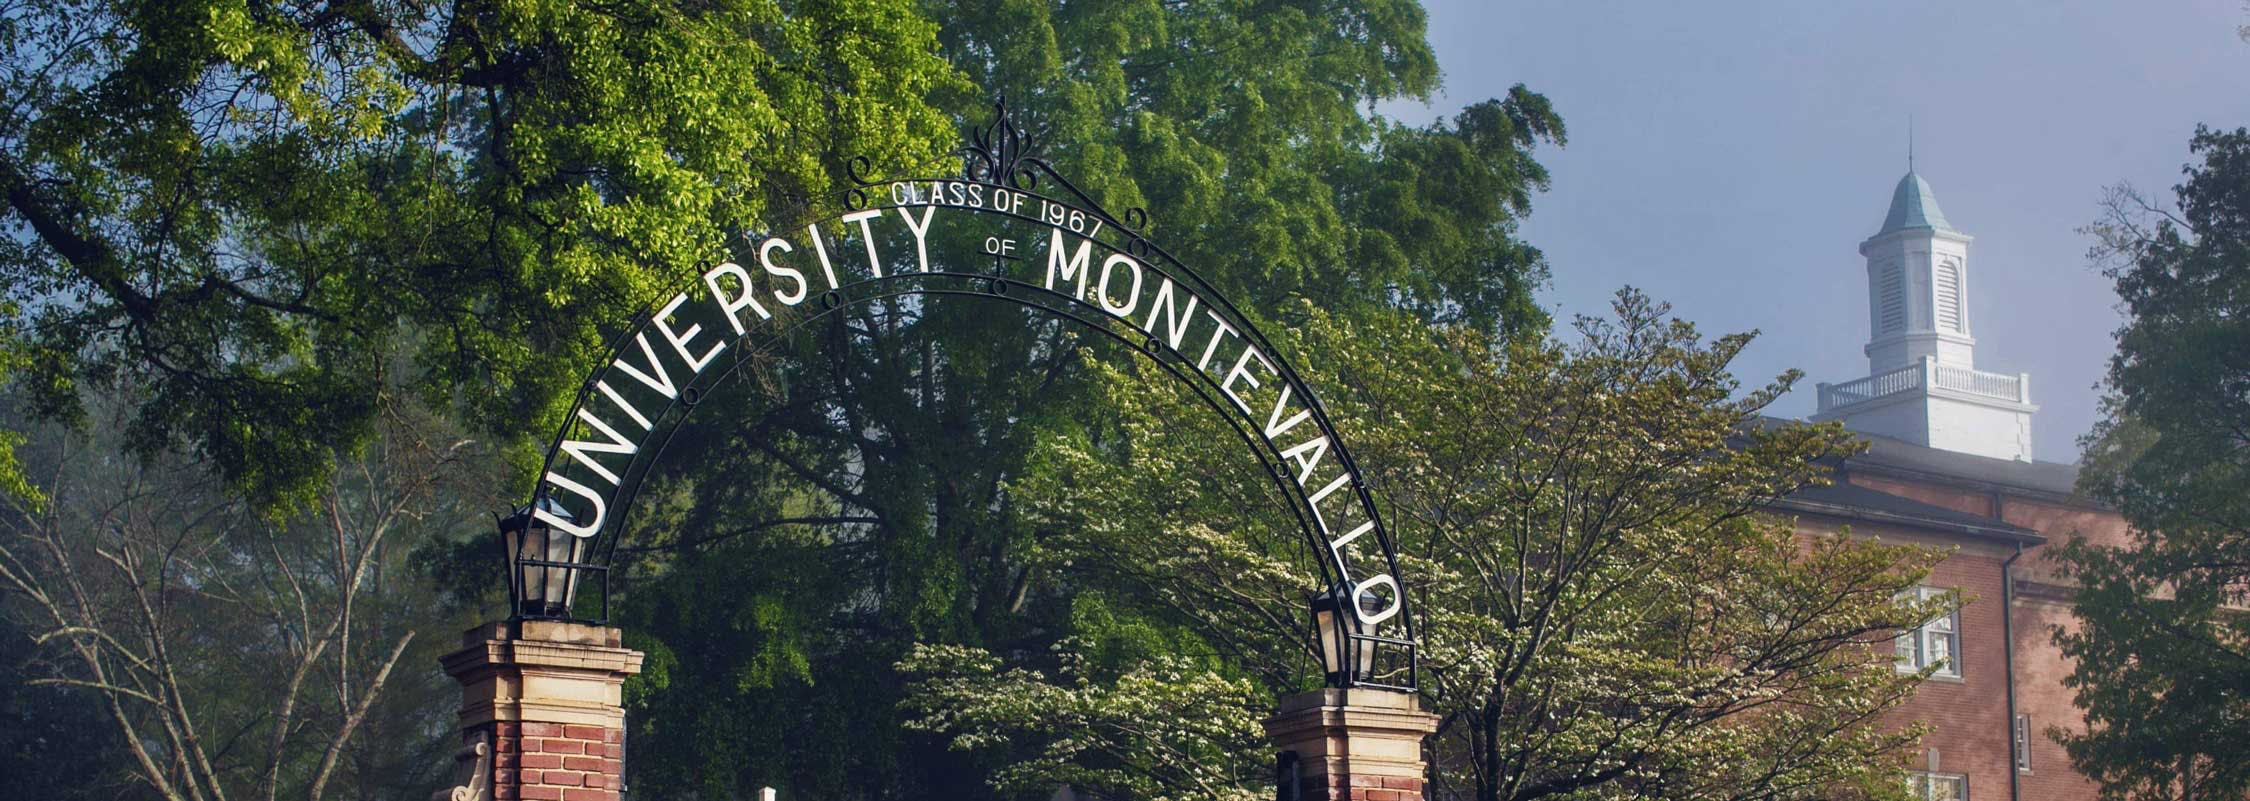 University of Montevallo welcome arch